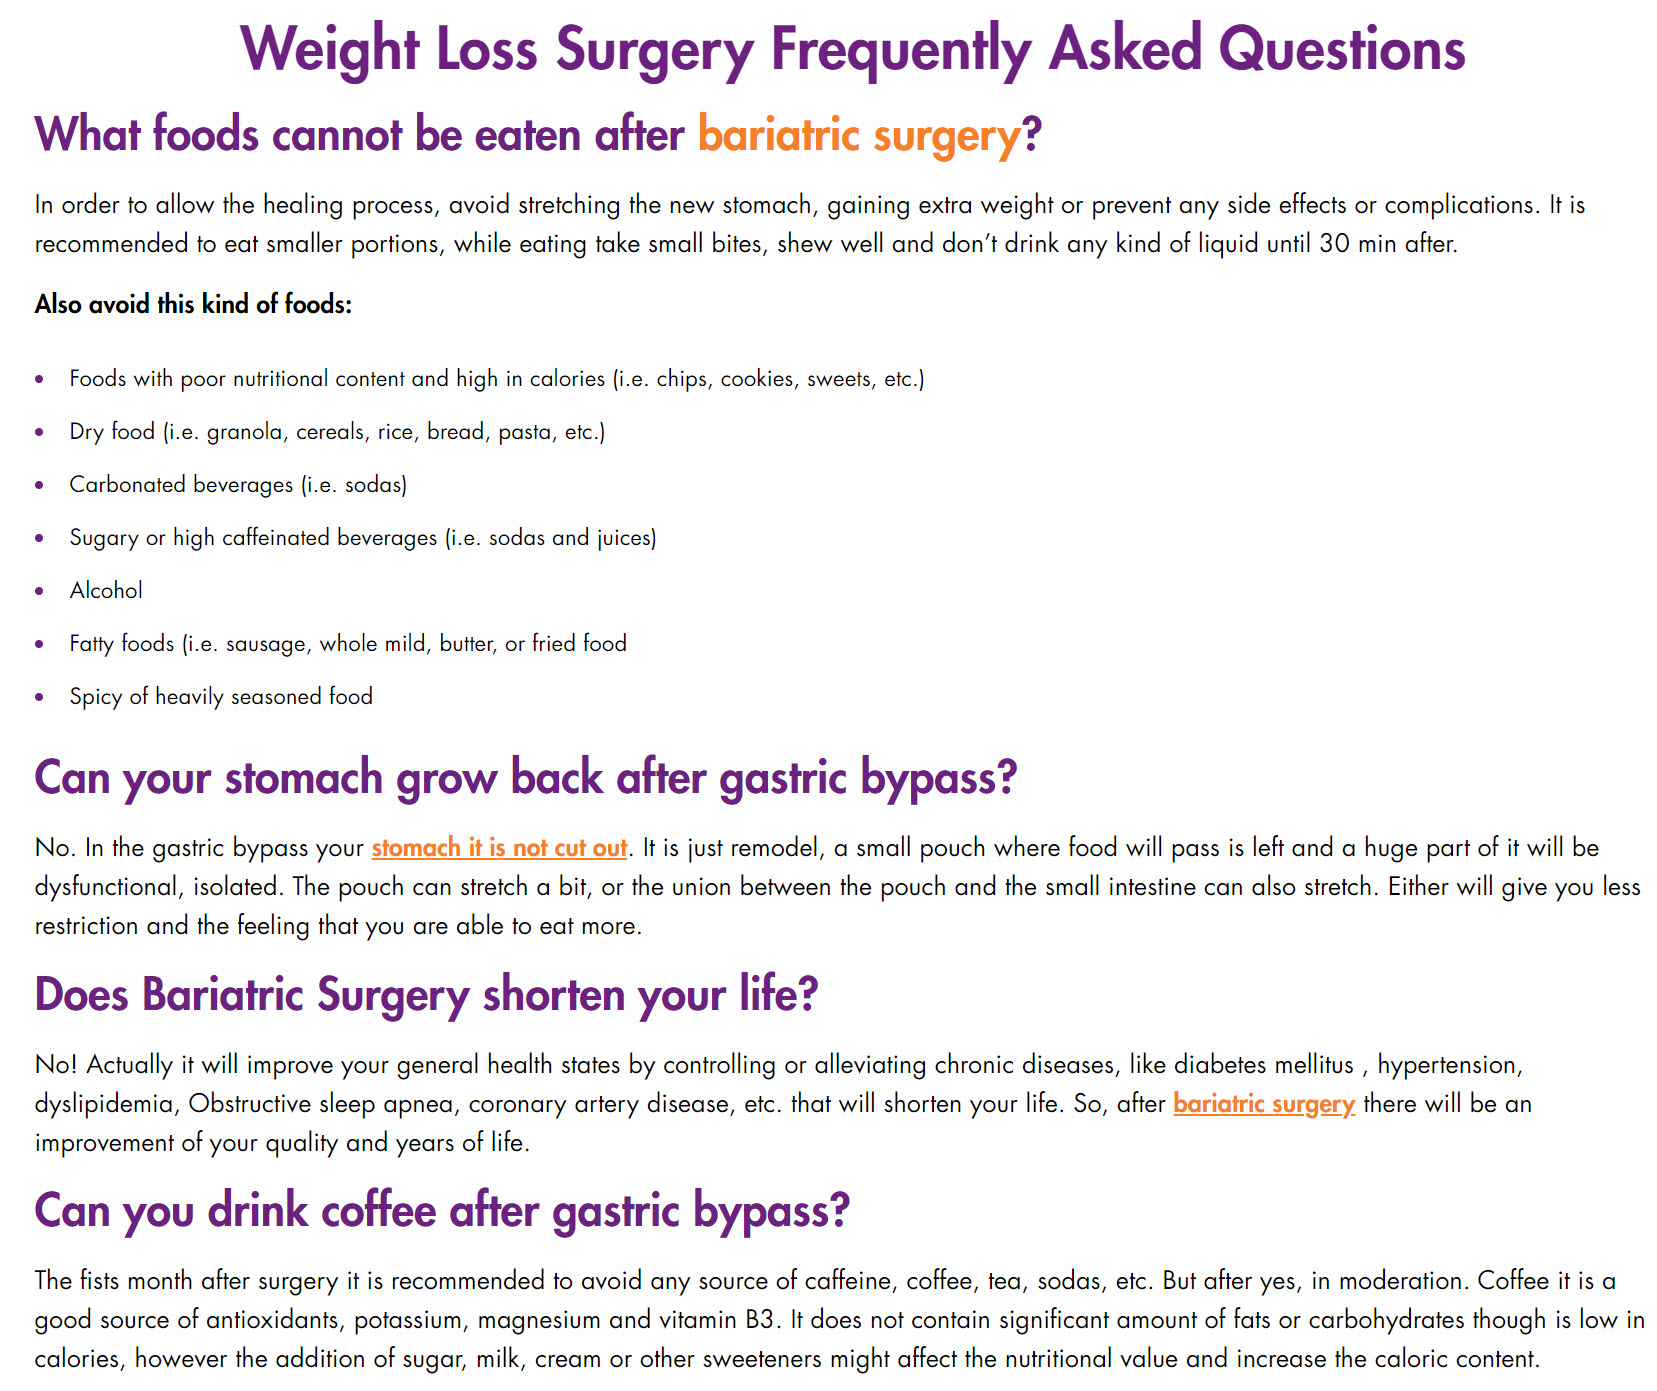 weight loss surgery frequently asked questions